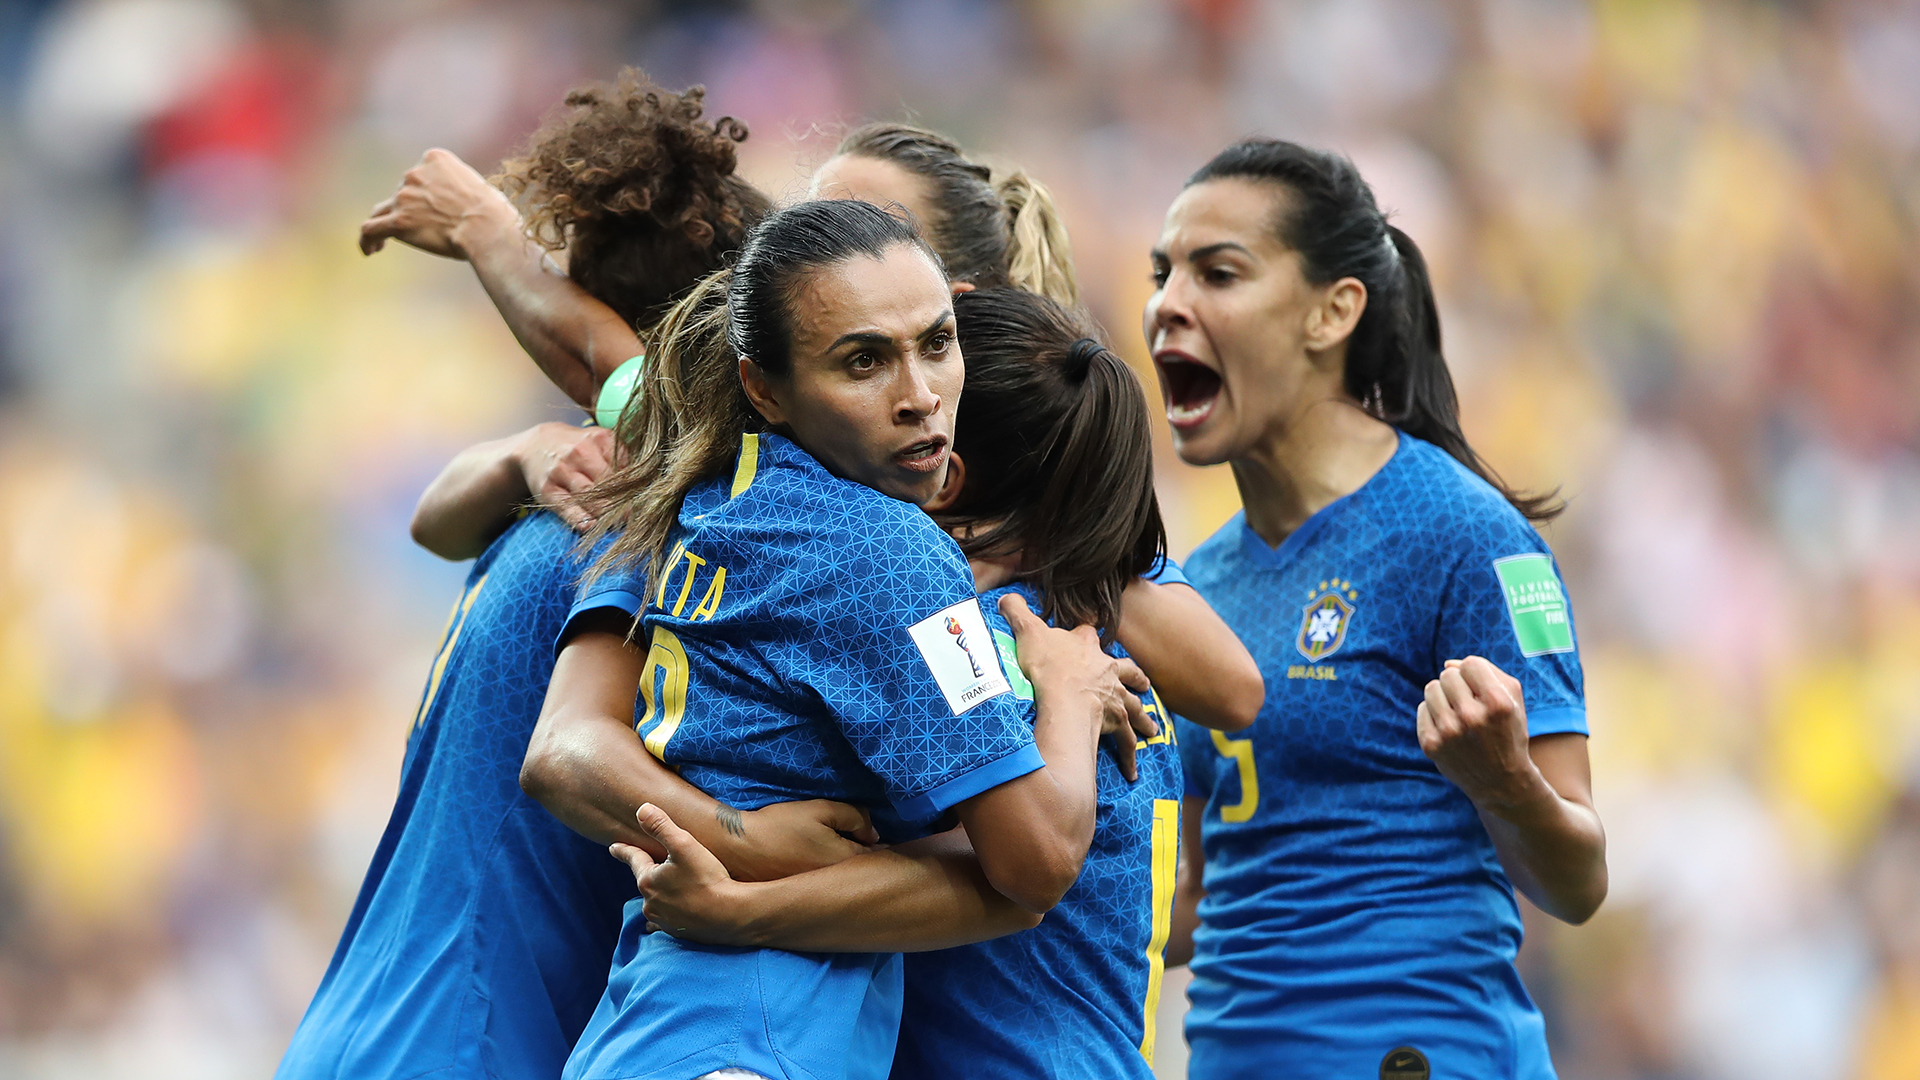 Italy brazil betting previews or5a exacta betting